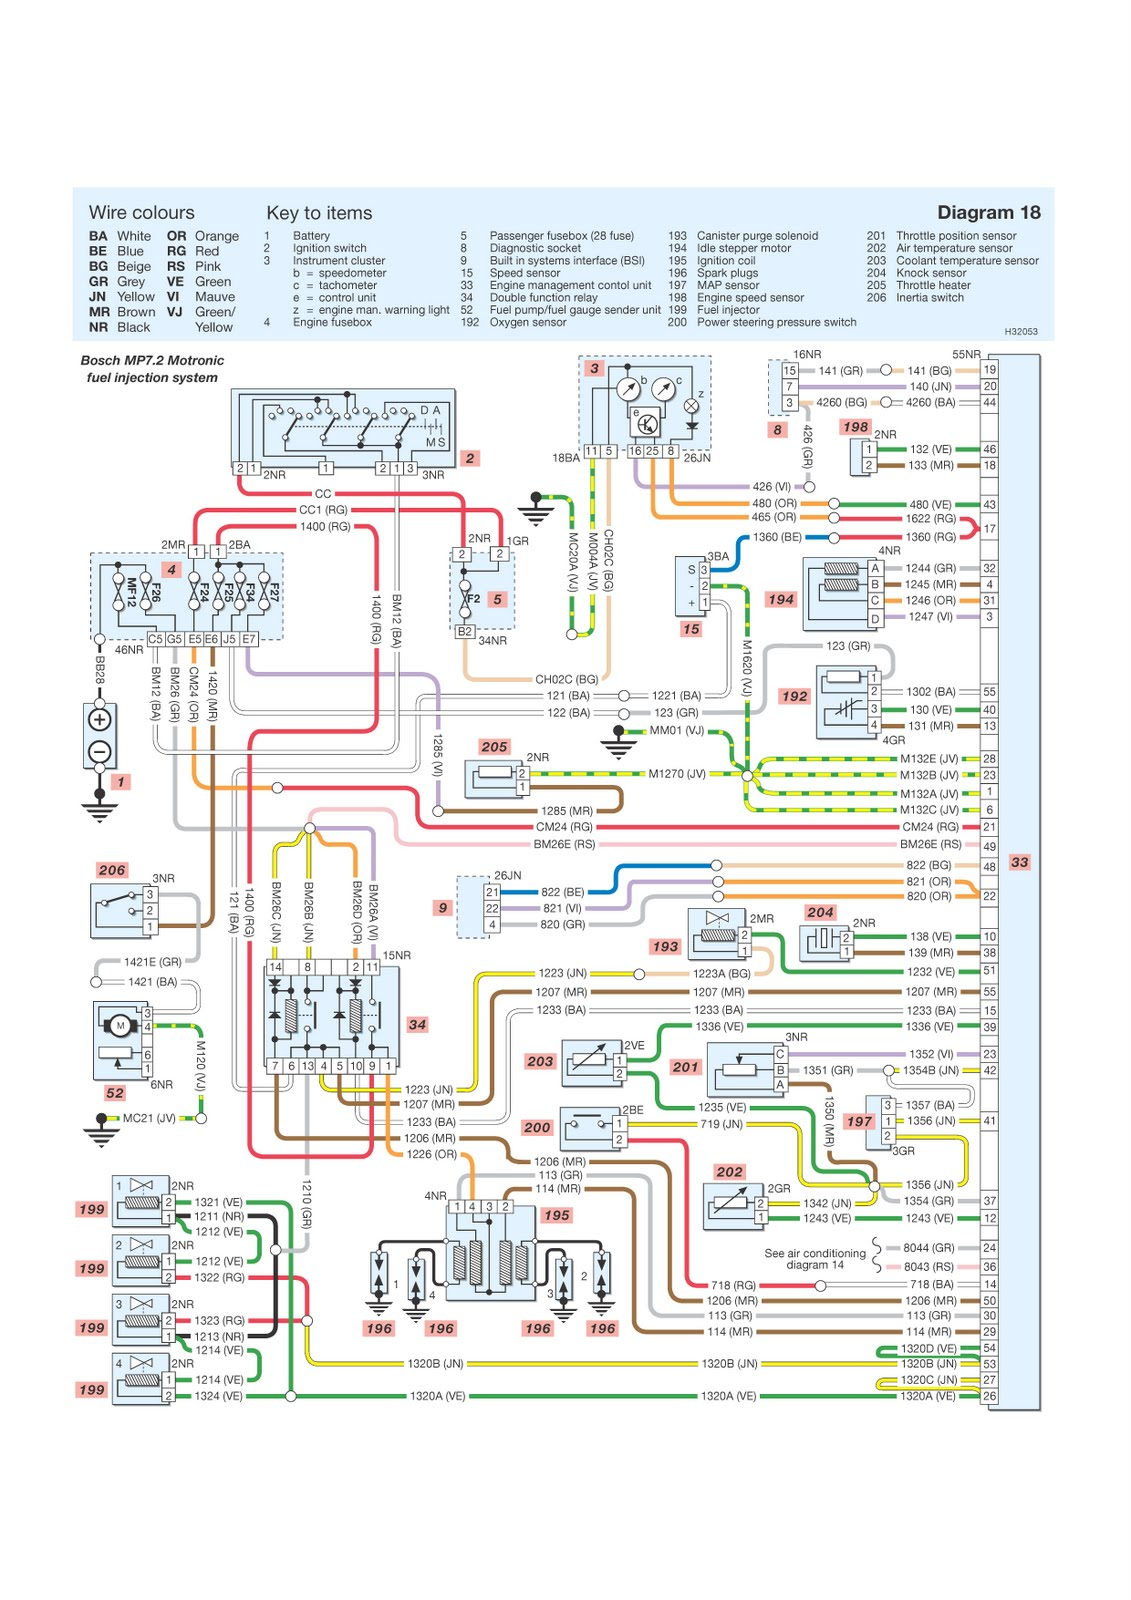 Diagram Peugeot 206 Sw Wiring Diagram Full Version Hd Quality Wiring Diagram Edrewiringk Queidue It